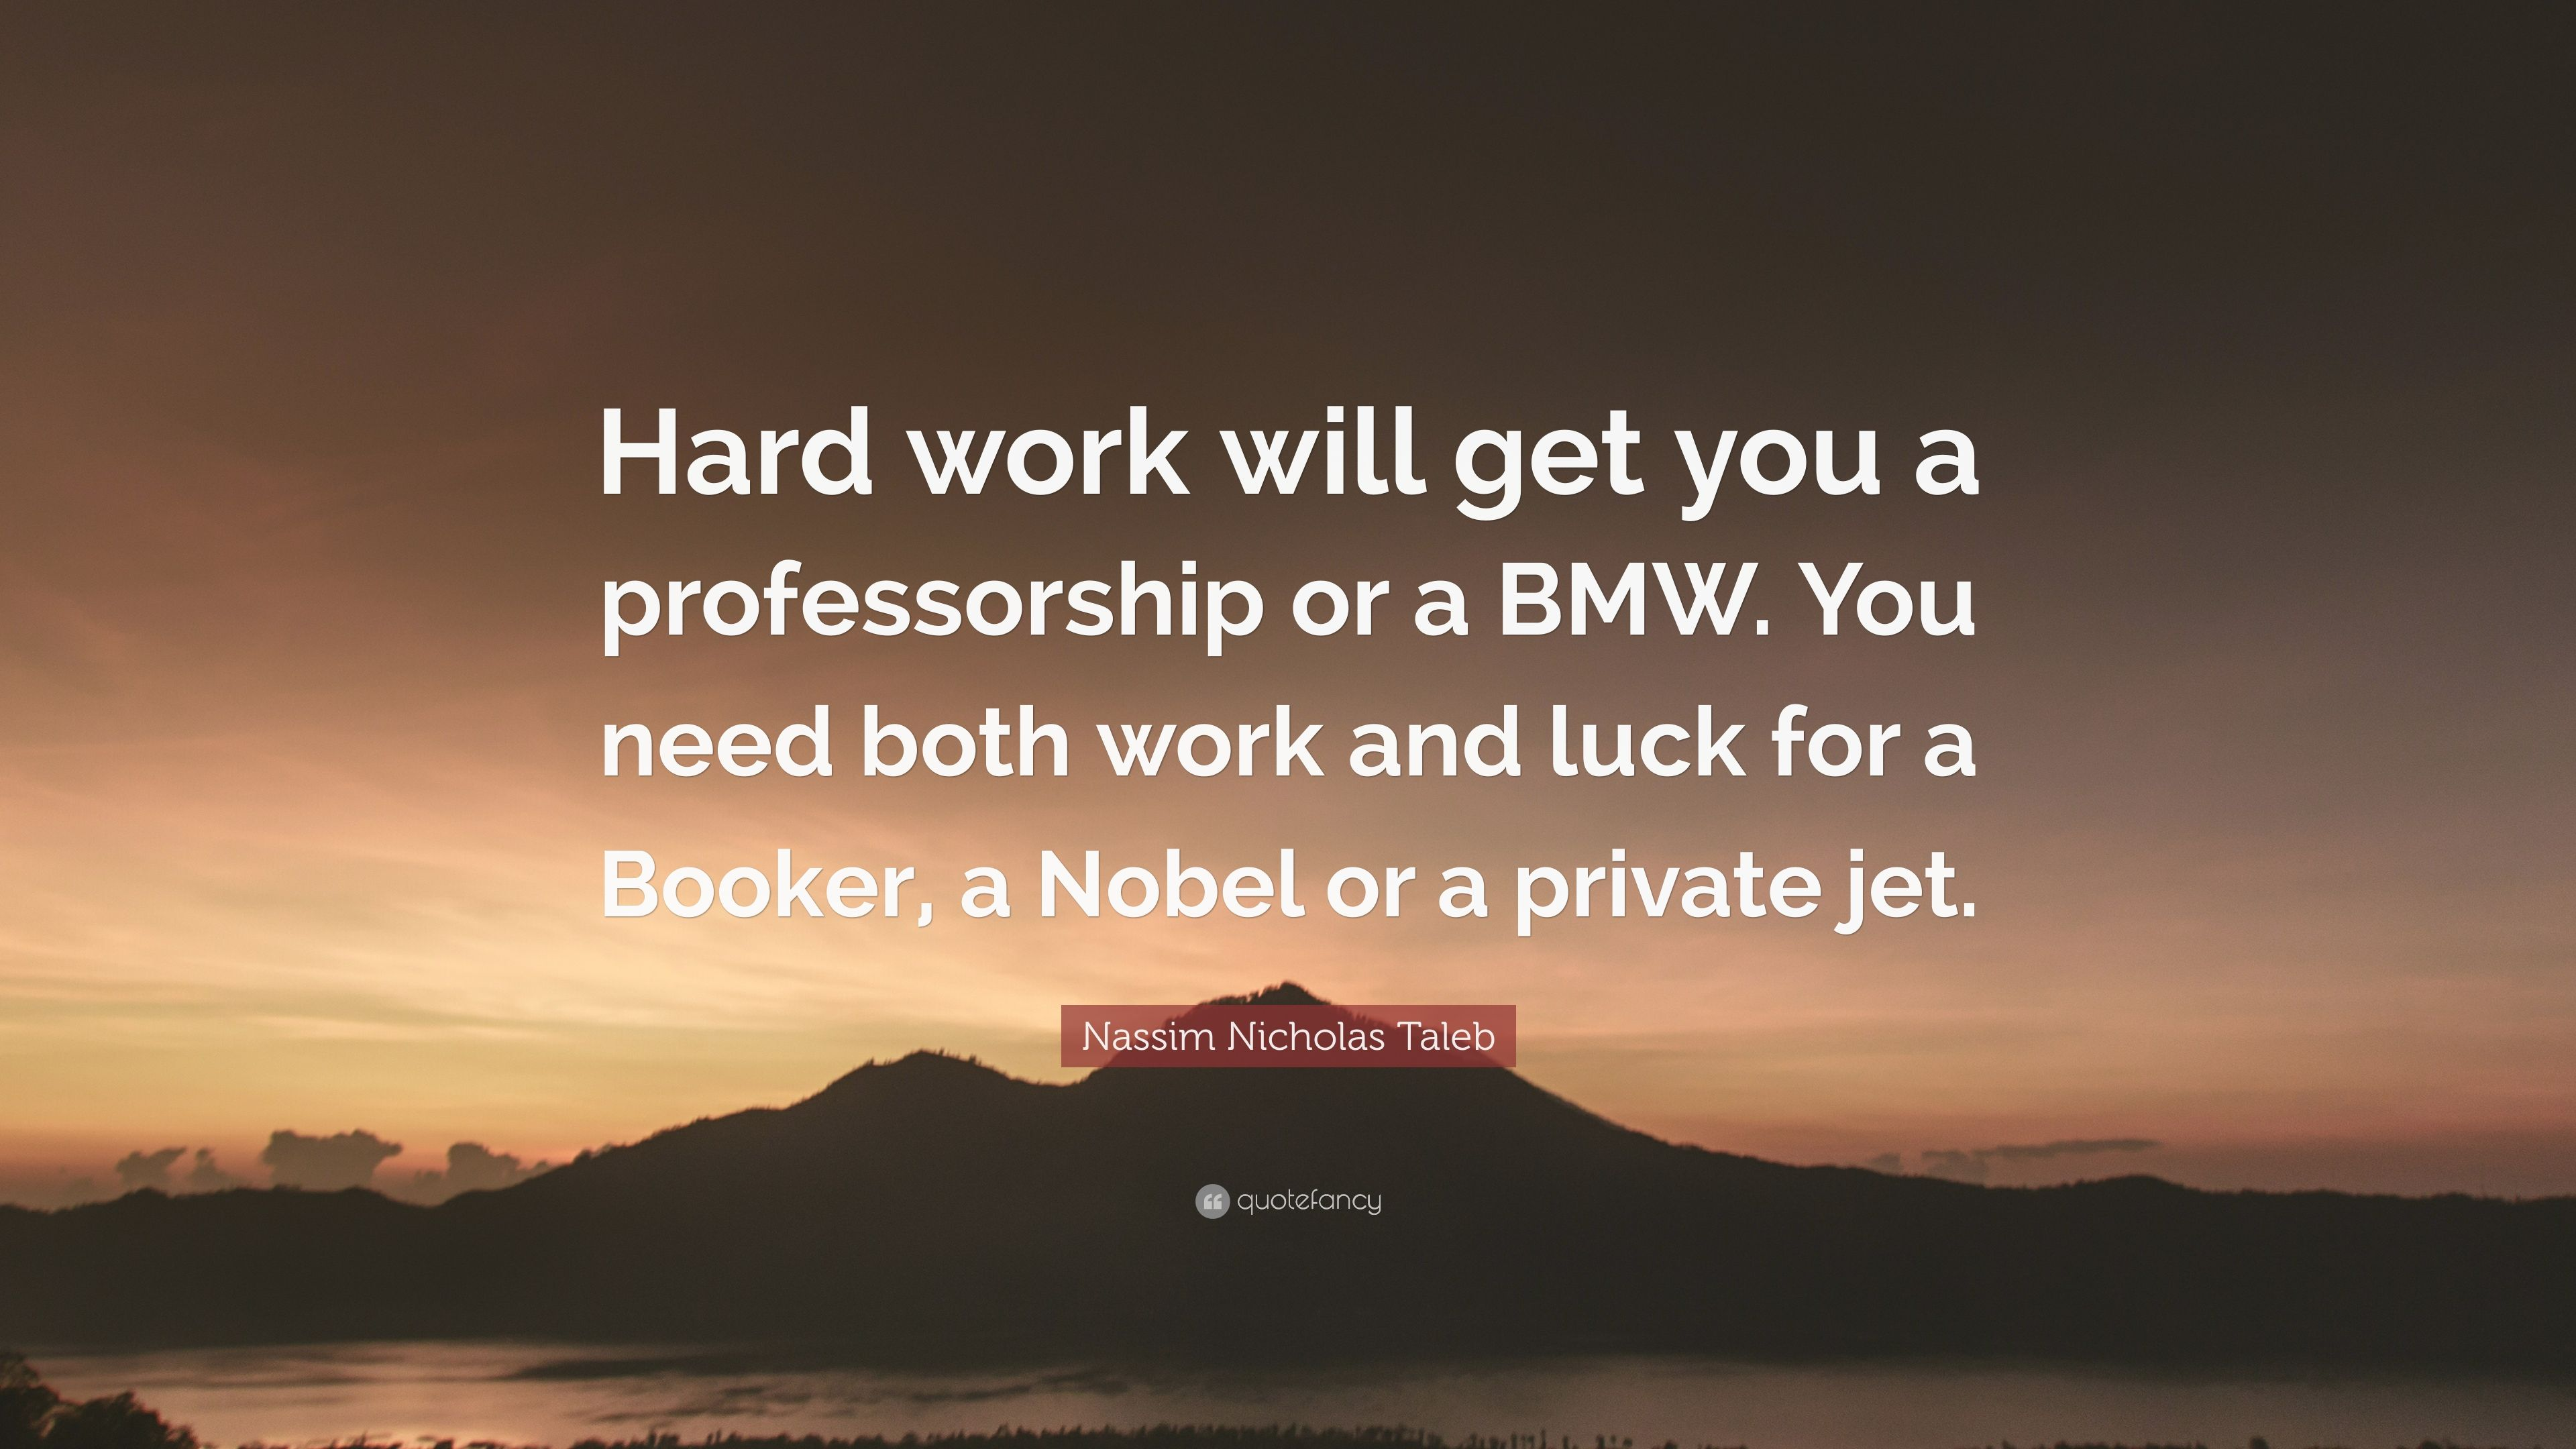 nassim nicholas taleb quote hard work will get you a professorship